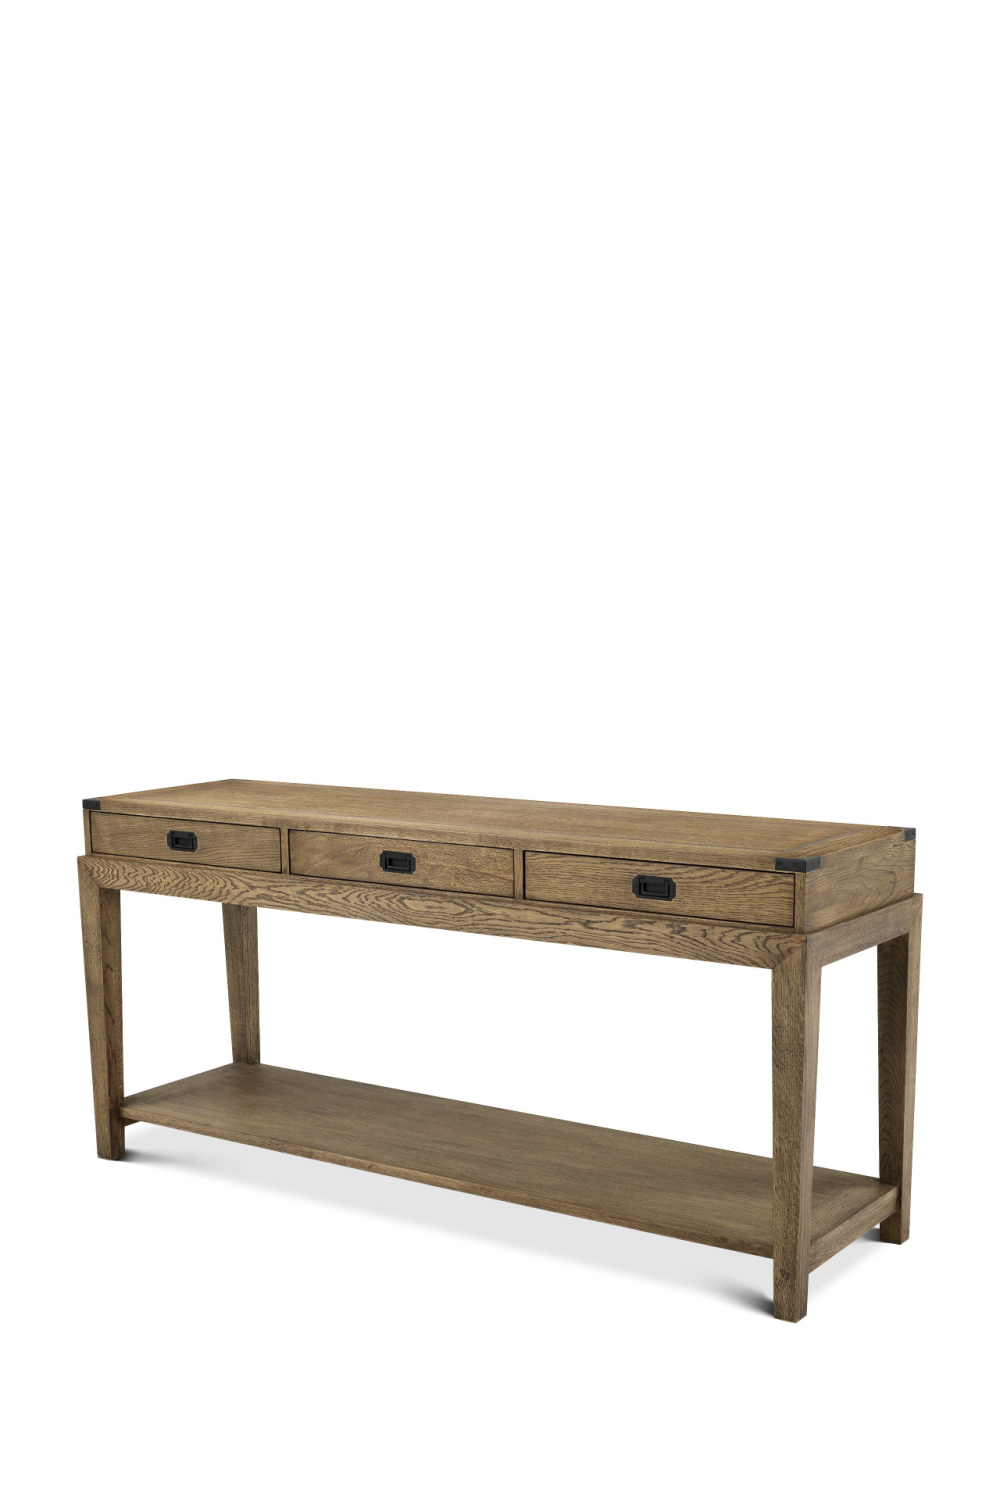 Wood Console Table | Eichholtz Military | #1 Eichholtz Online Retailer